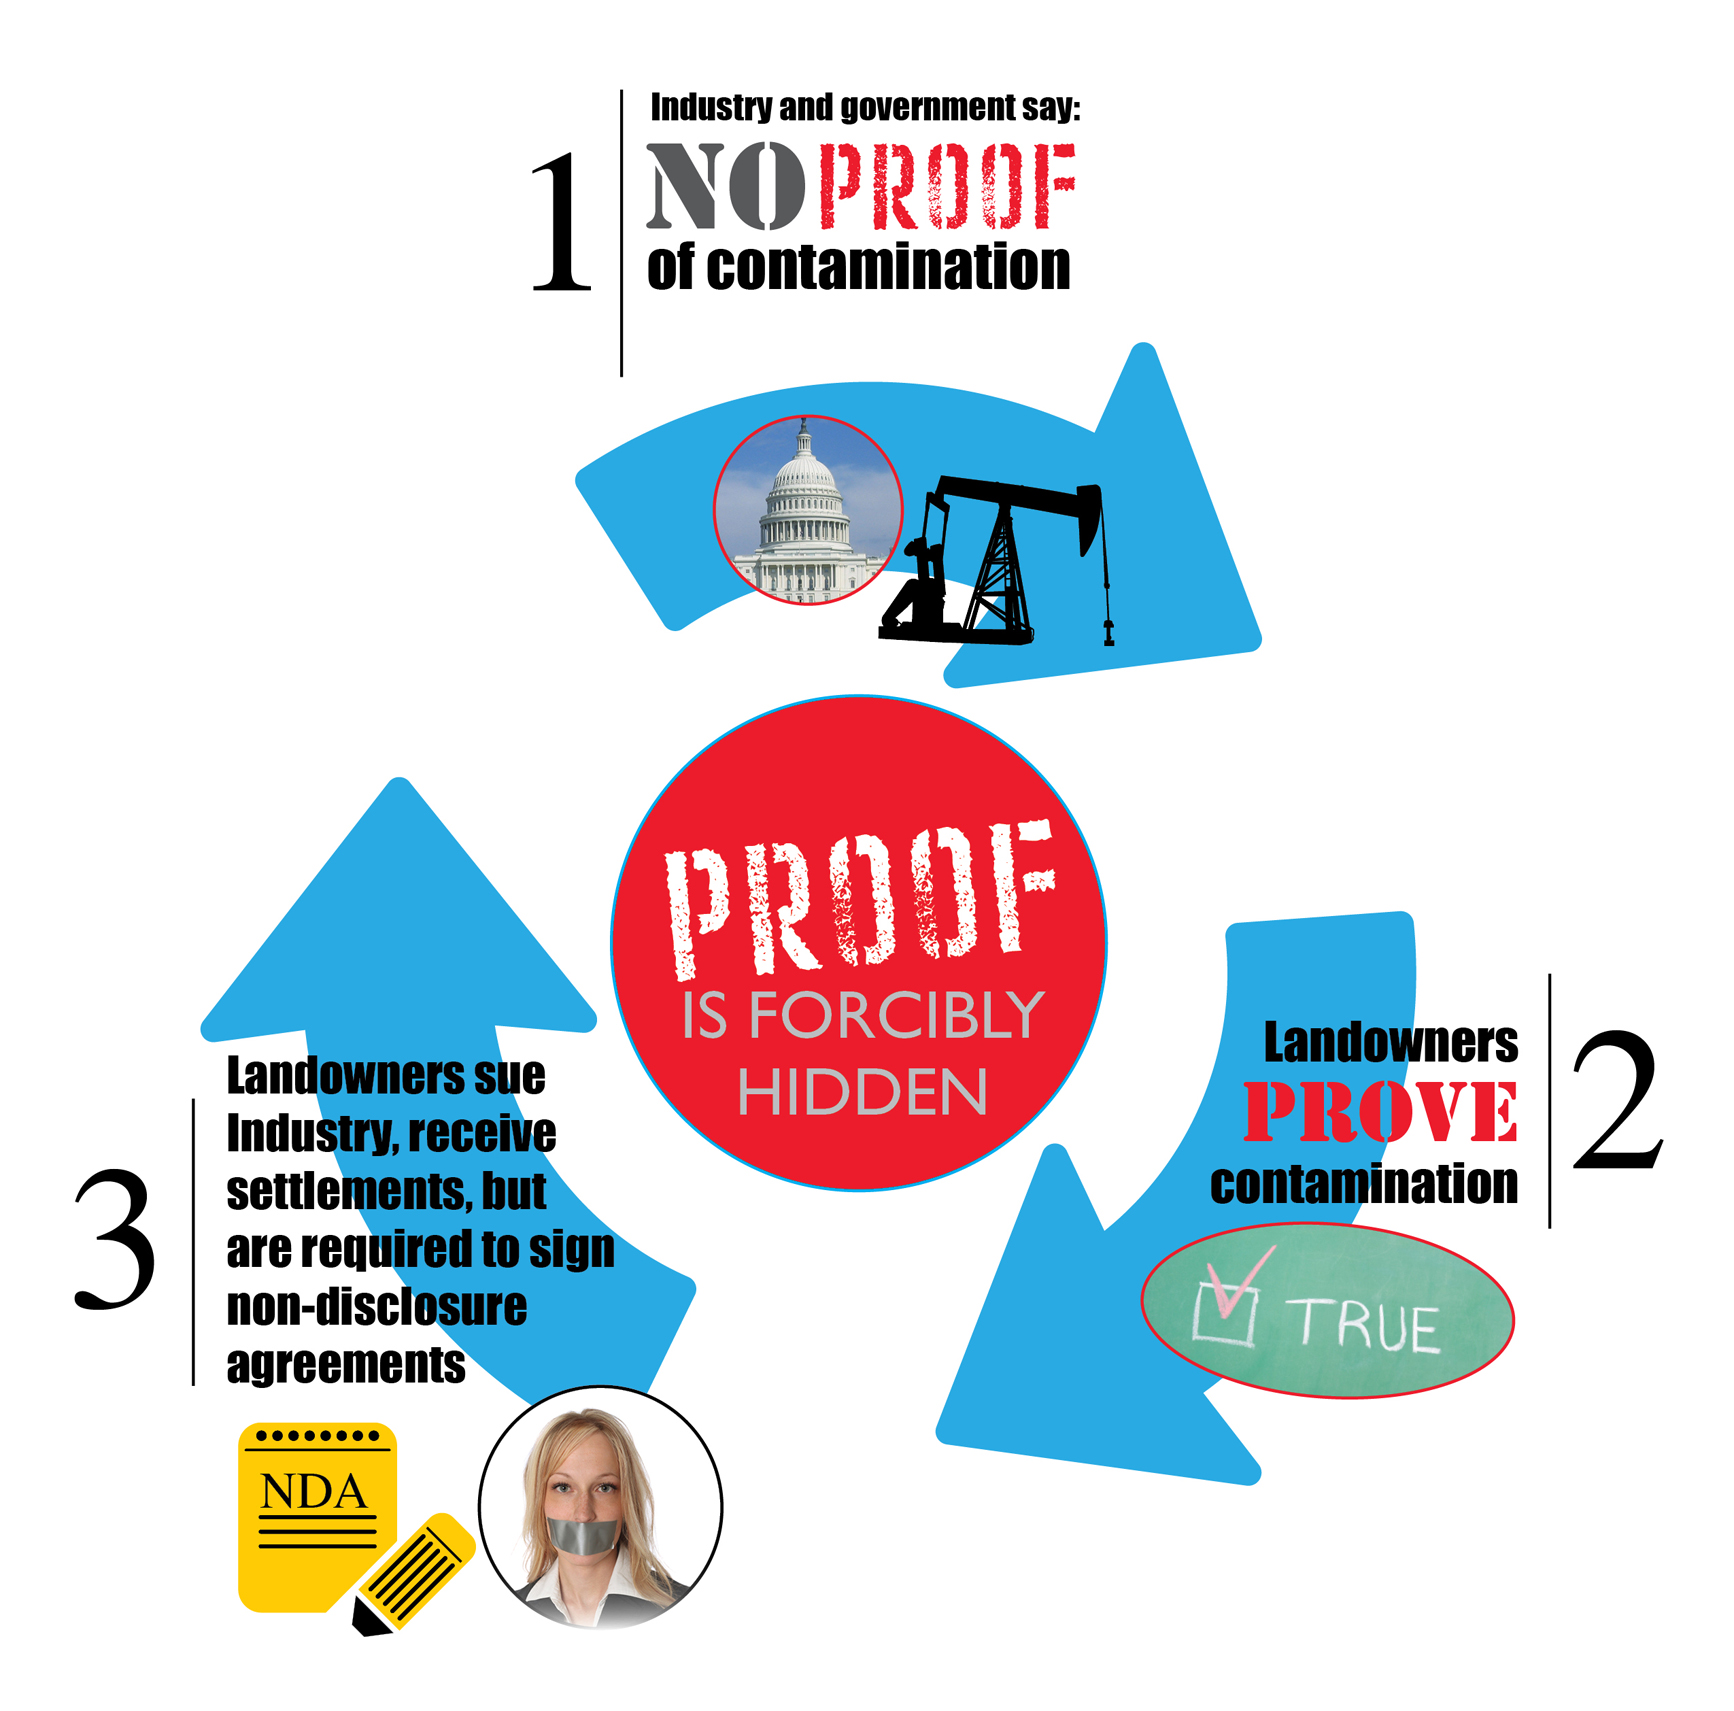 cycle-of-fracking-denial-non-disclosure-agreements-gag-orders-proof-is-forcibly-hidden